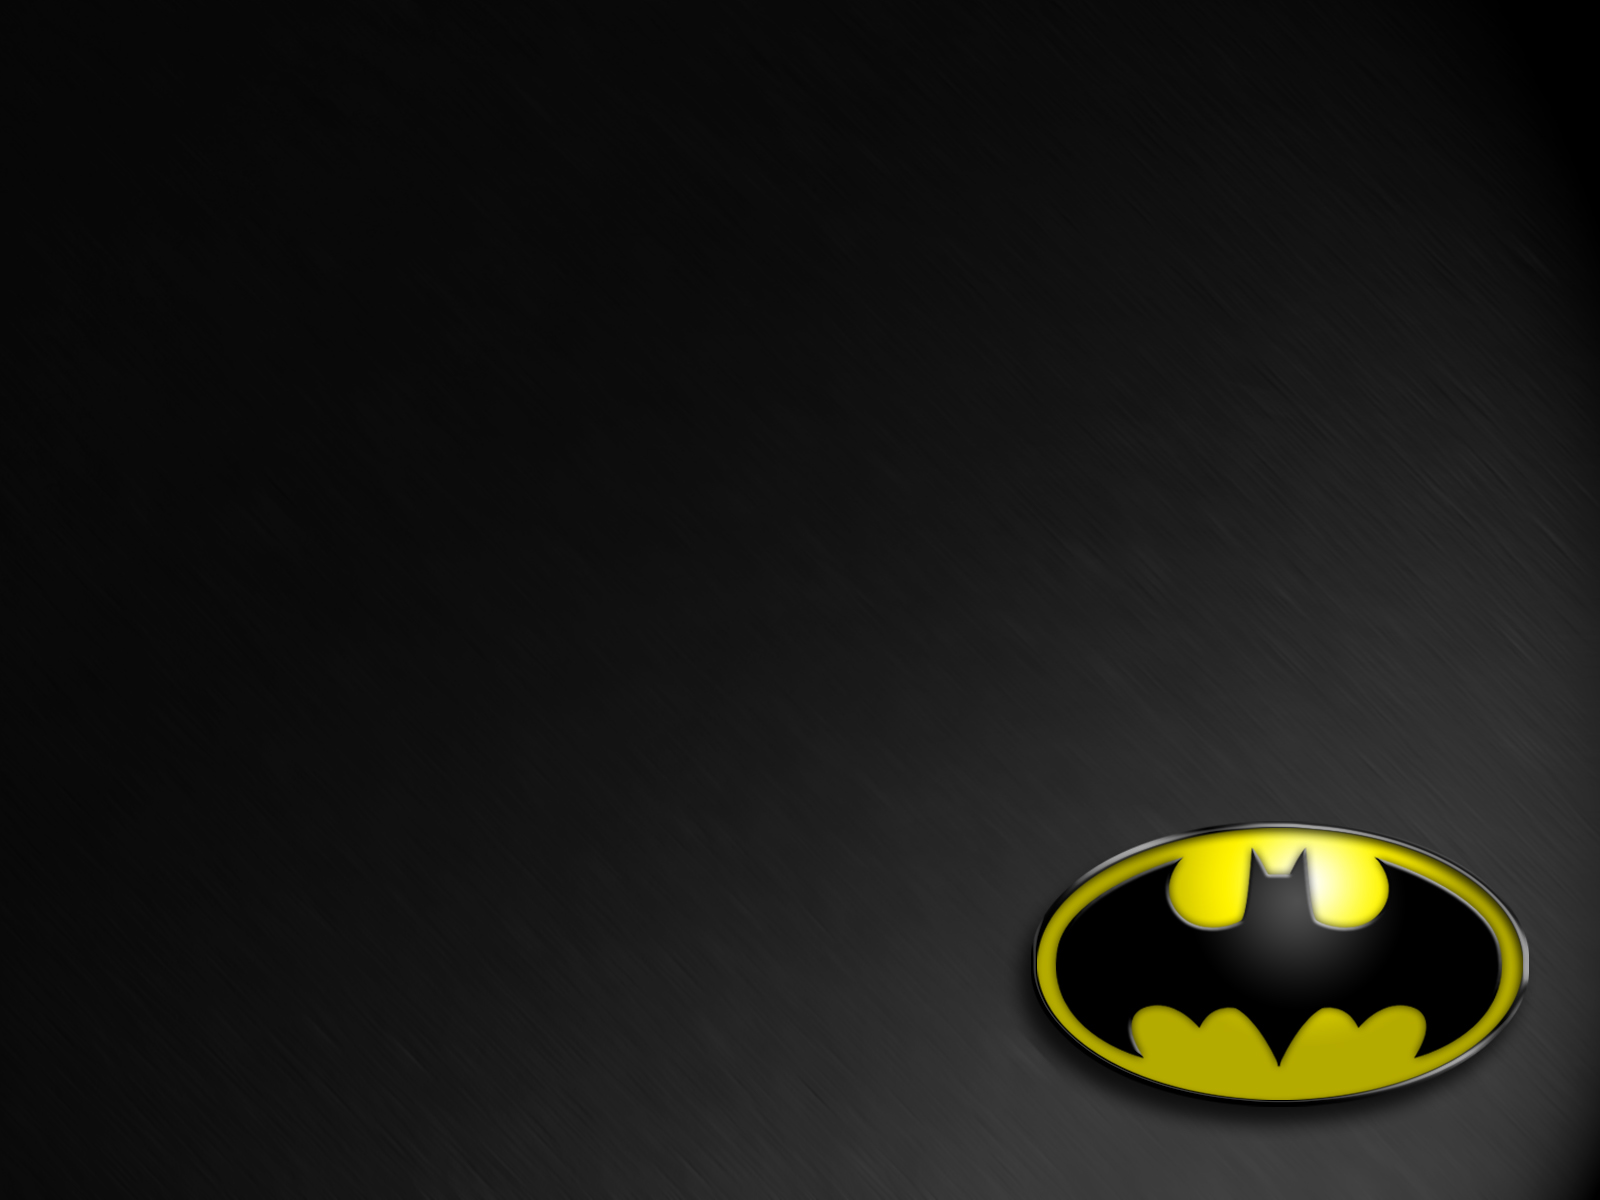 Batman Computer Wallpapers Desktop Backgrounds 1600x1200 ID 1600x1200